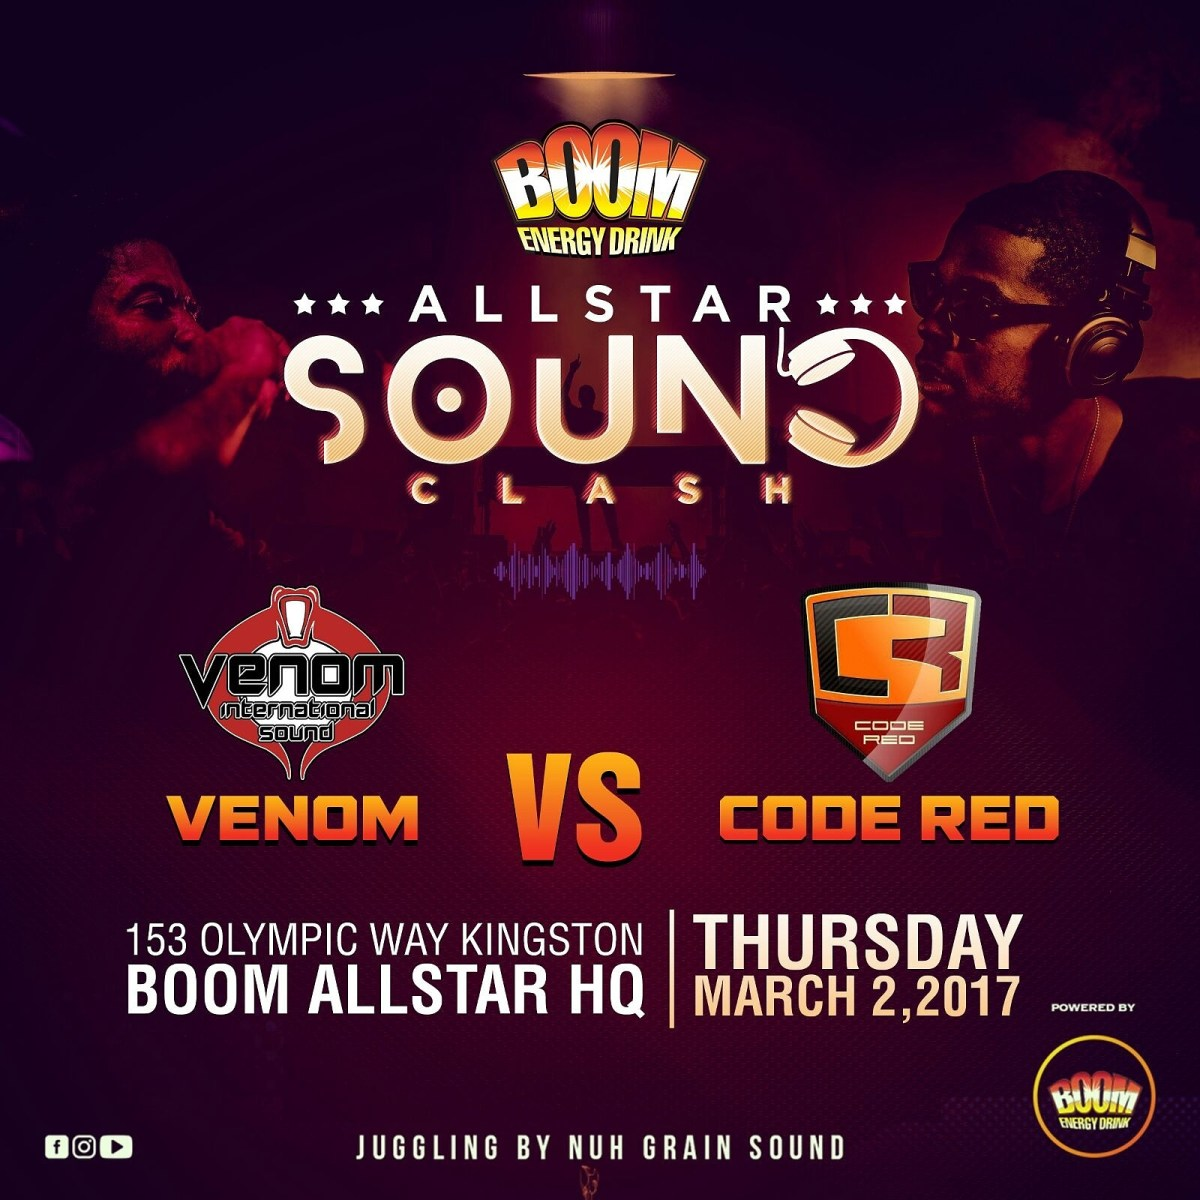 CODE RED VS VENOM SOUND @ALL STAR BOOM CLASH MARCH 2ND 2017